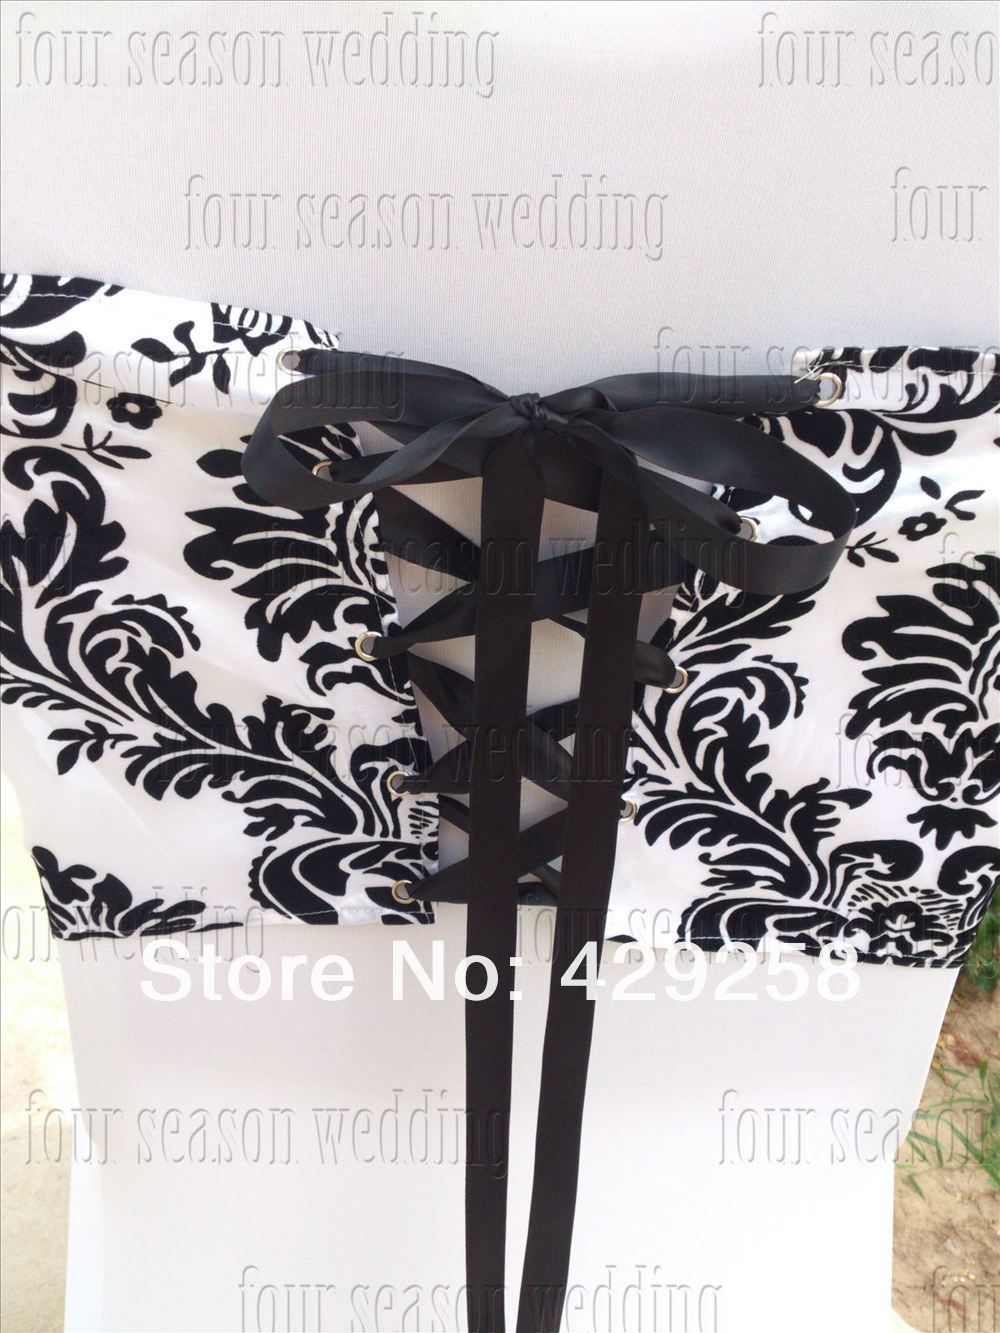 Enjoyable Us 180 0 Free Shipping 100Pcs White And Black Flocking Taffeta Chair Cover Sash Also Call Elegance Damask Corset Chair Sash In Sashes From Home Download Free Architecture Designs Rallybritishbridgeorg